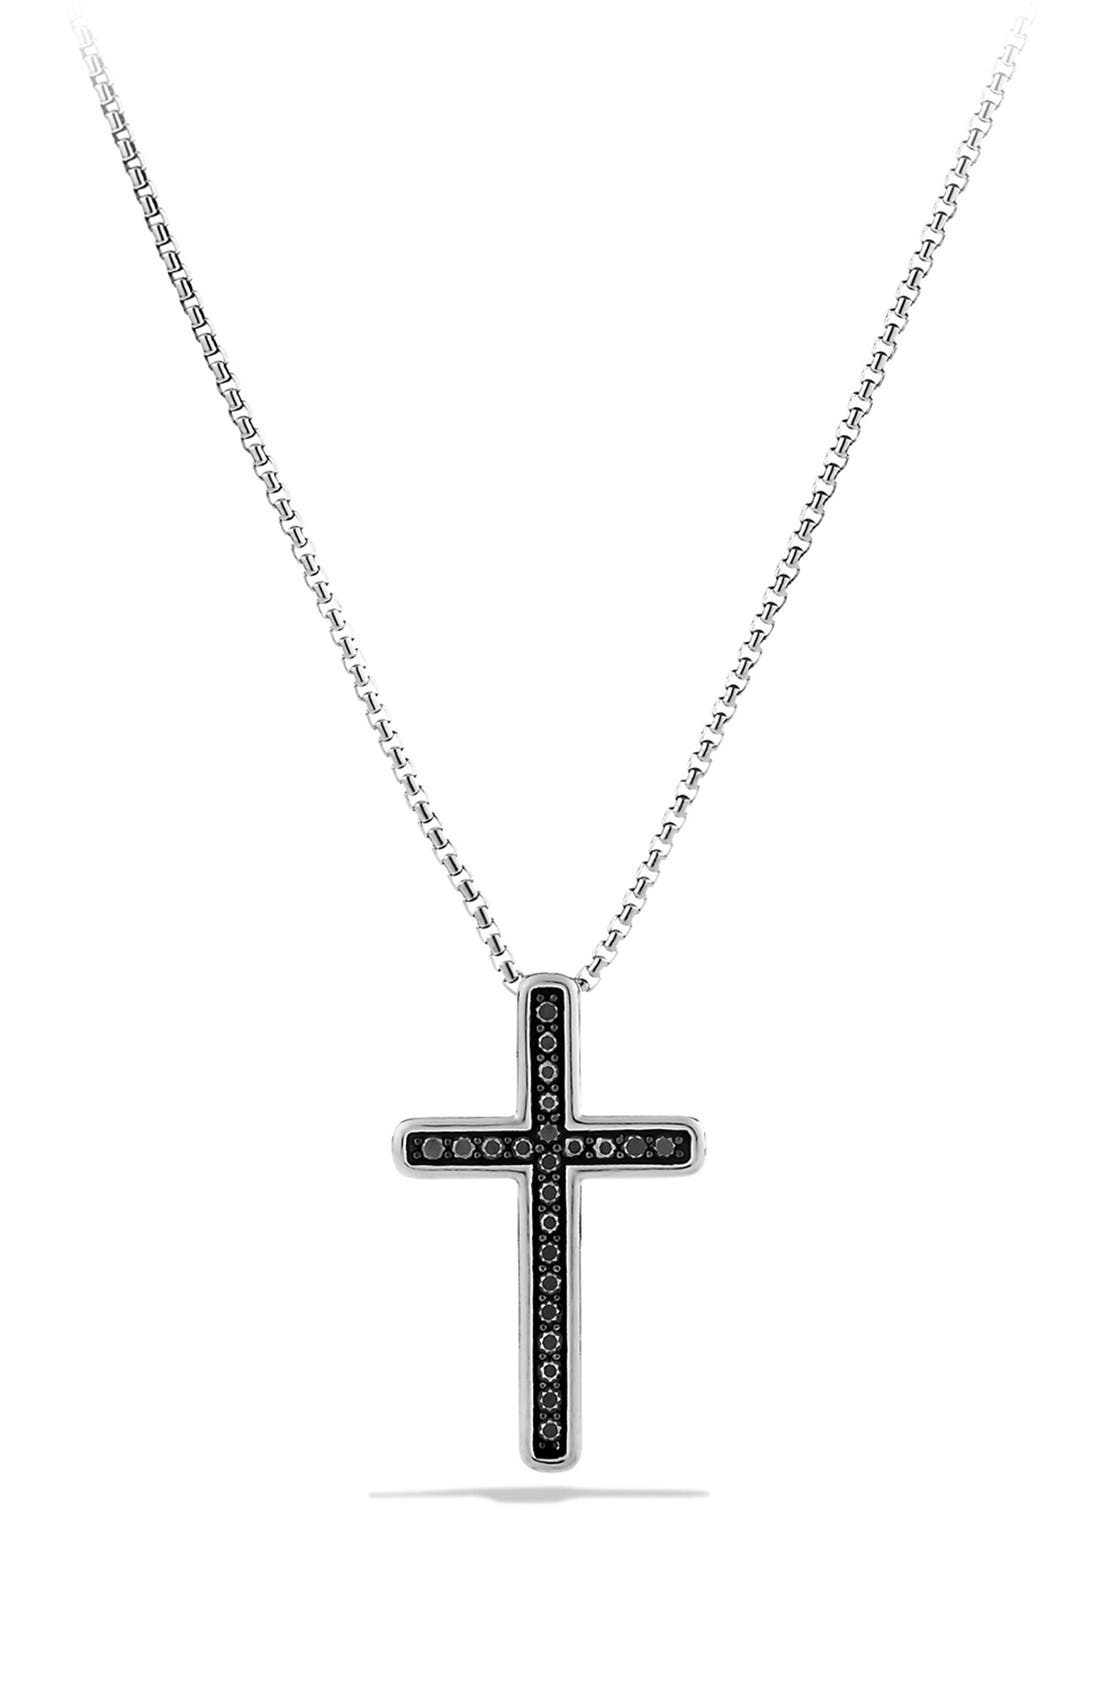 Main Image - David Yurman 'Petite Pavé' Cross Necklace with Black Diamonds